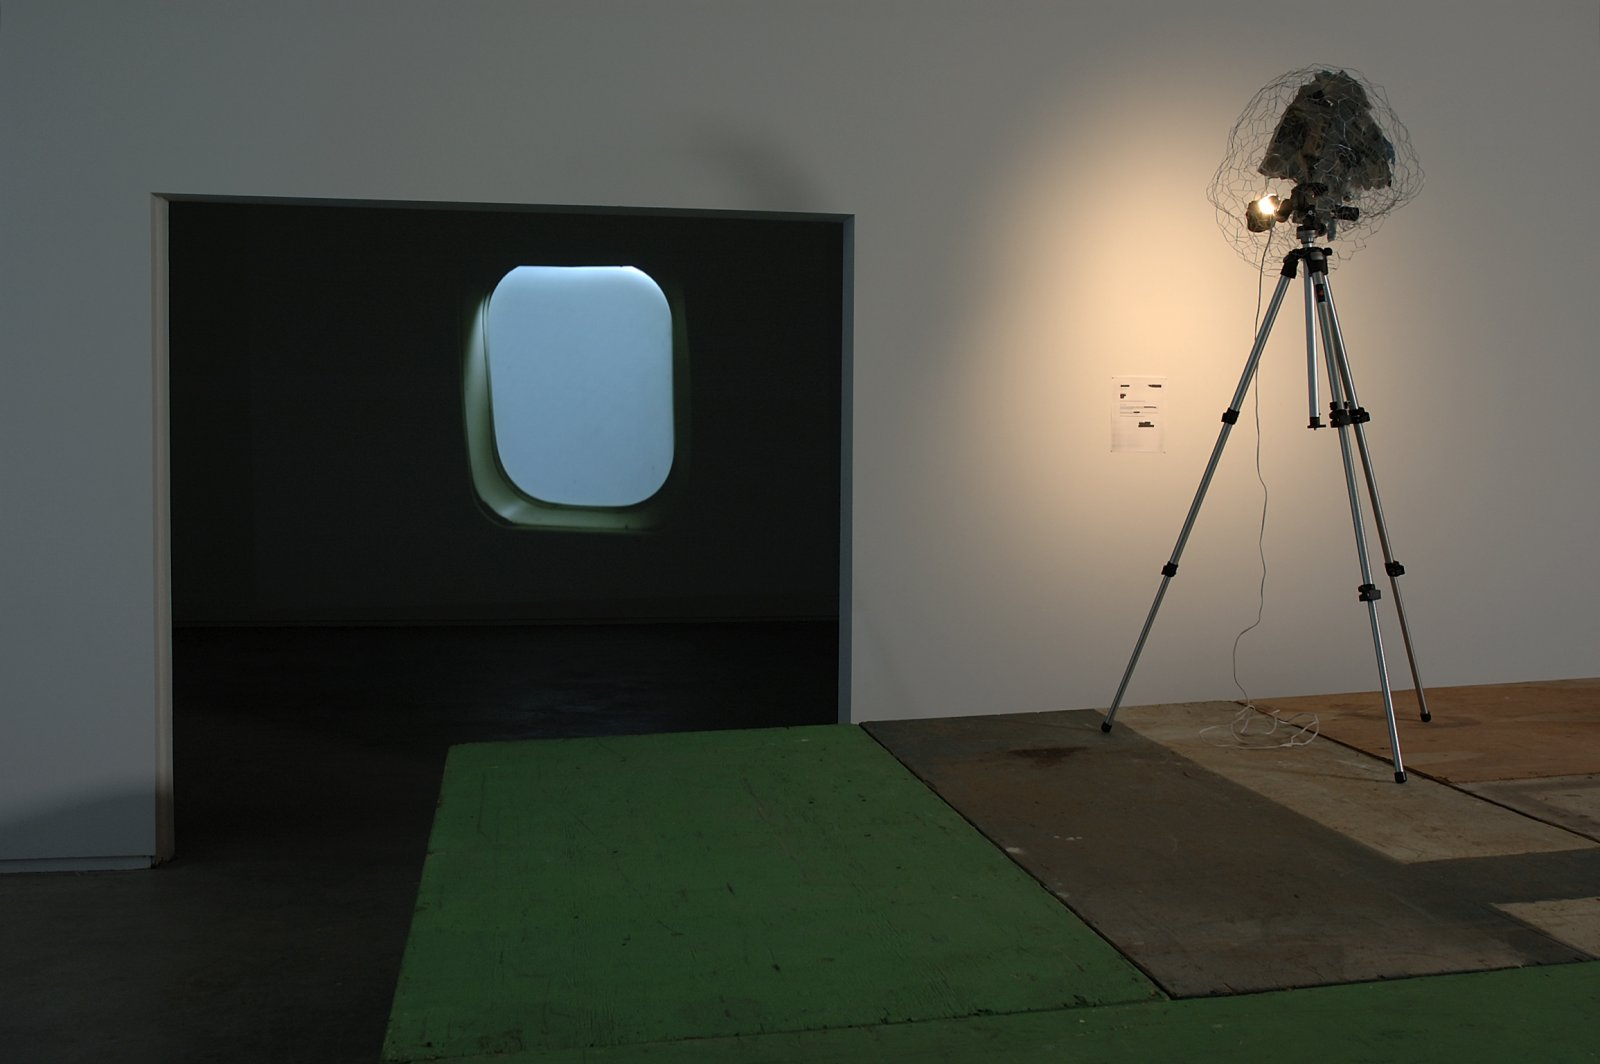 Geoffrey Farmer, installation view, Airliner Open Studio, Catriona Jeffries, 2006 by Geoffrey Farmer